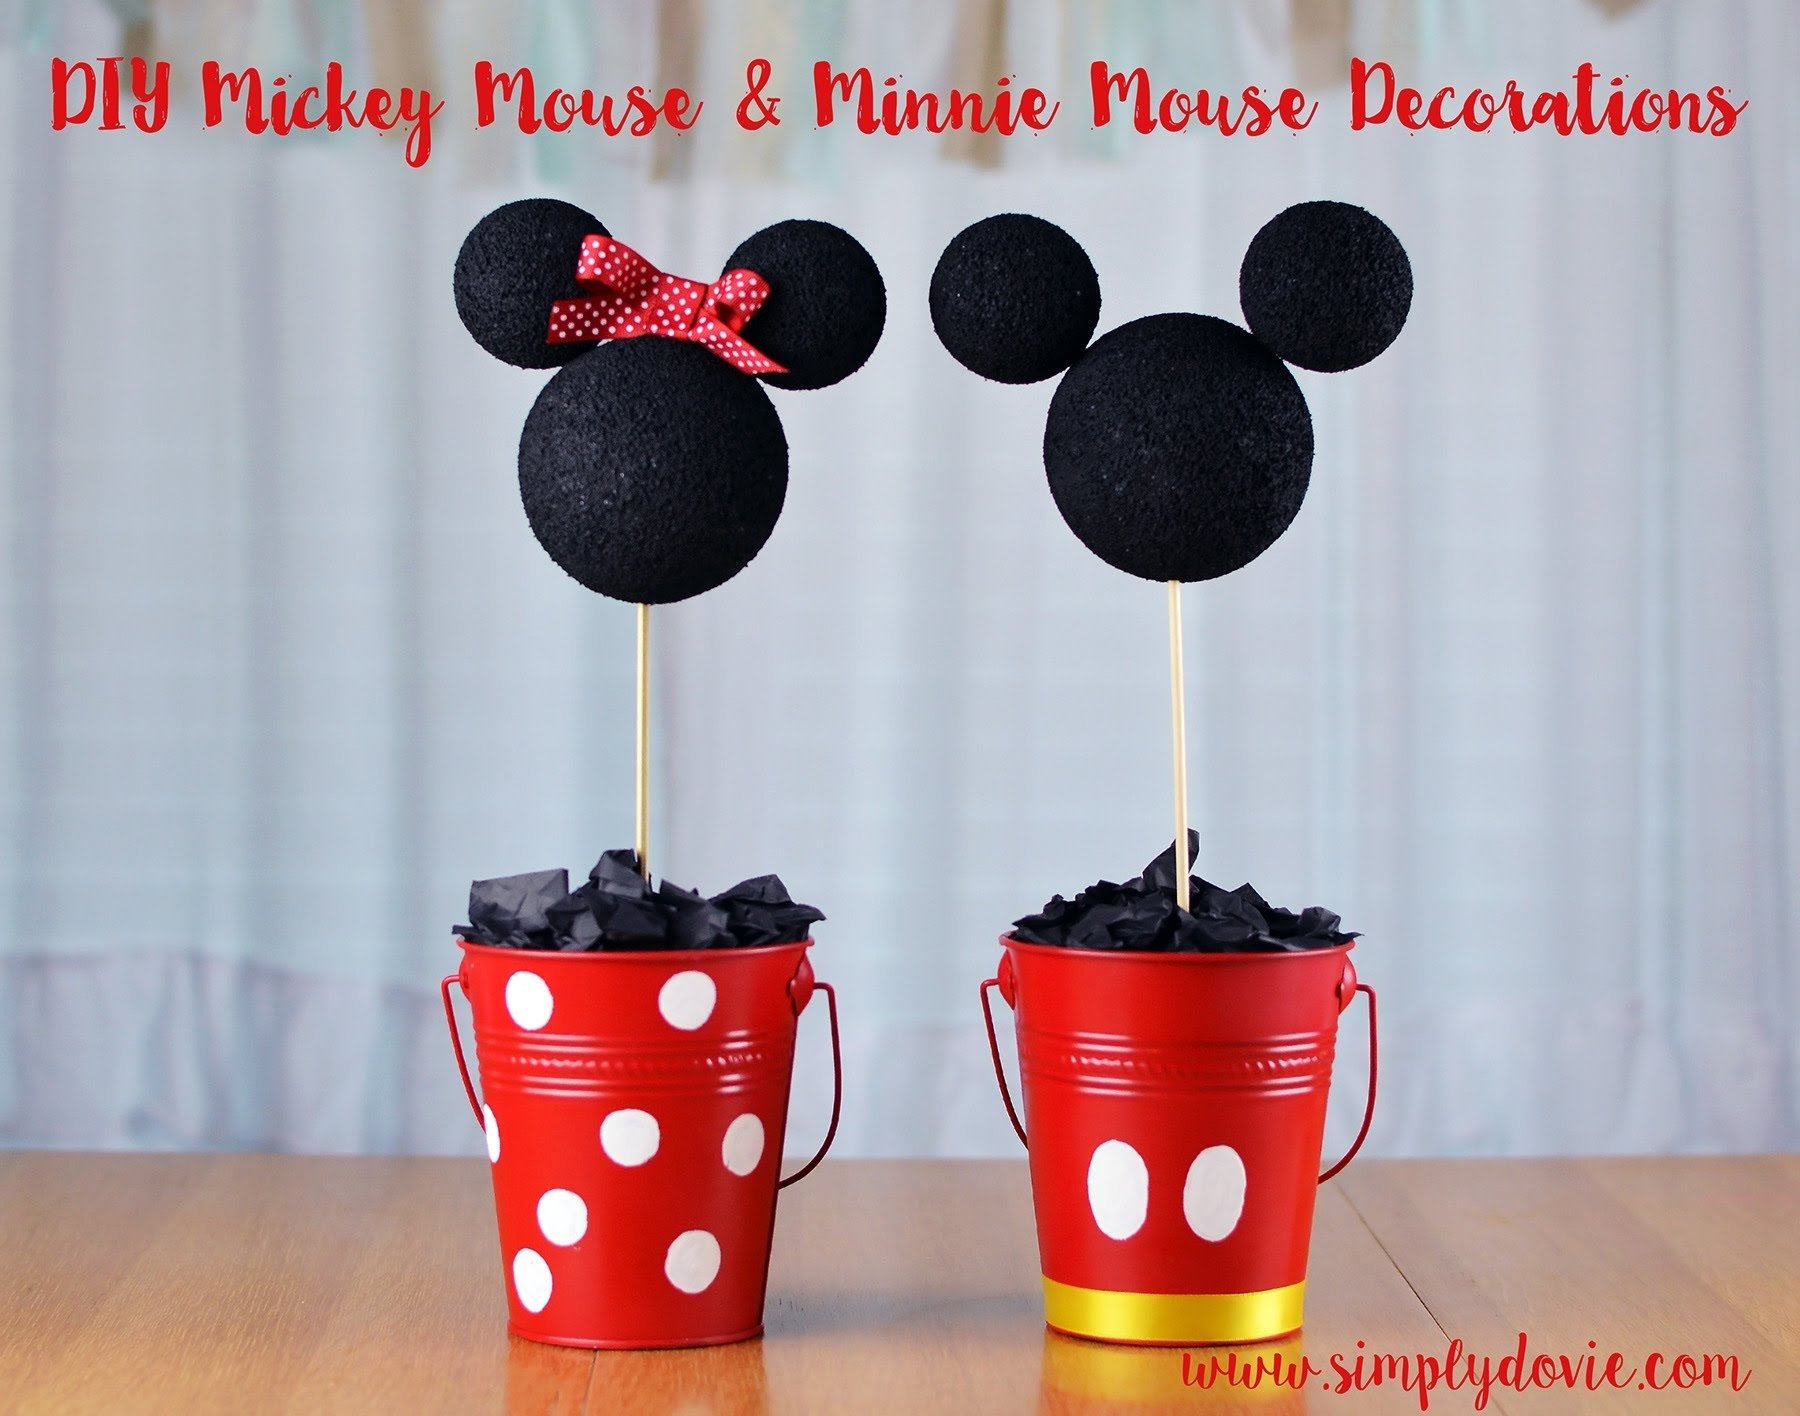 diy minnie & mickey birthday decorations with simply dovie - youtube